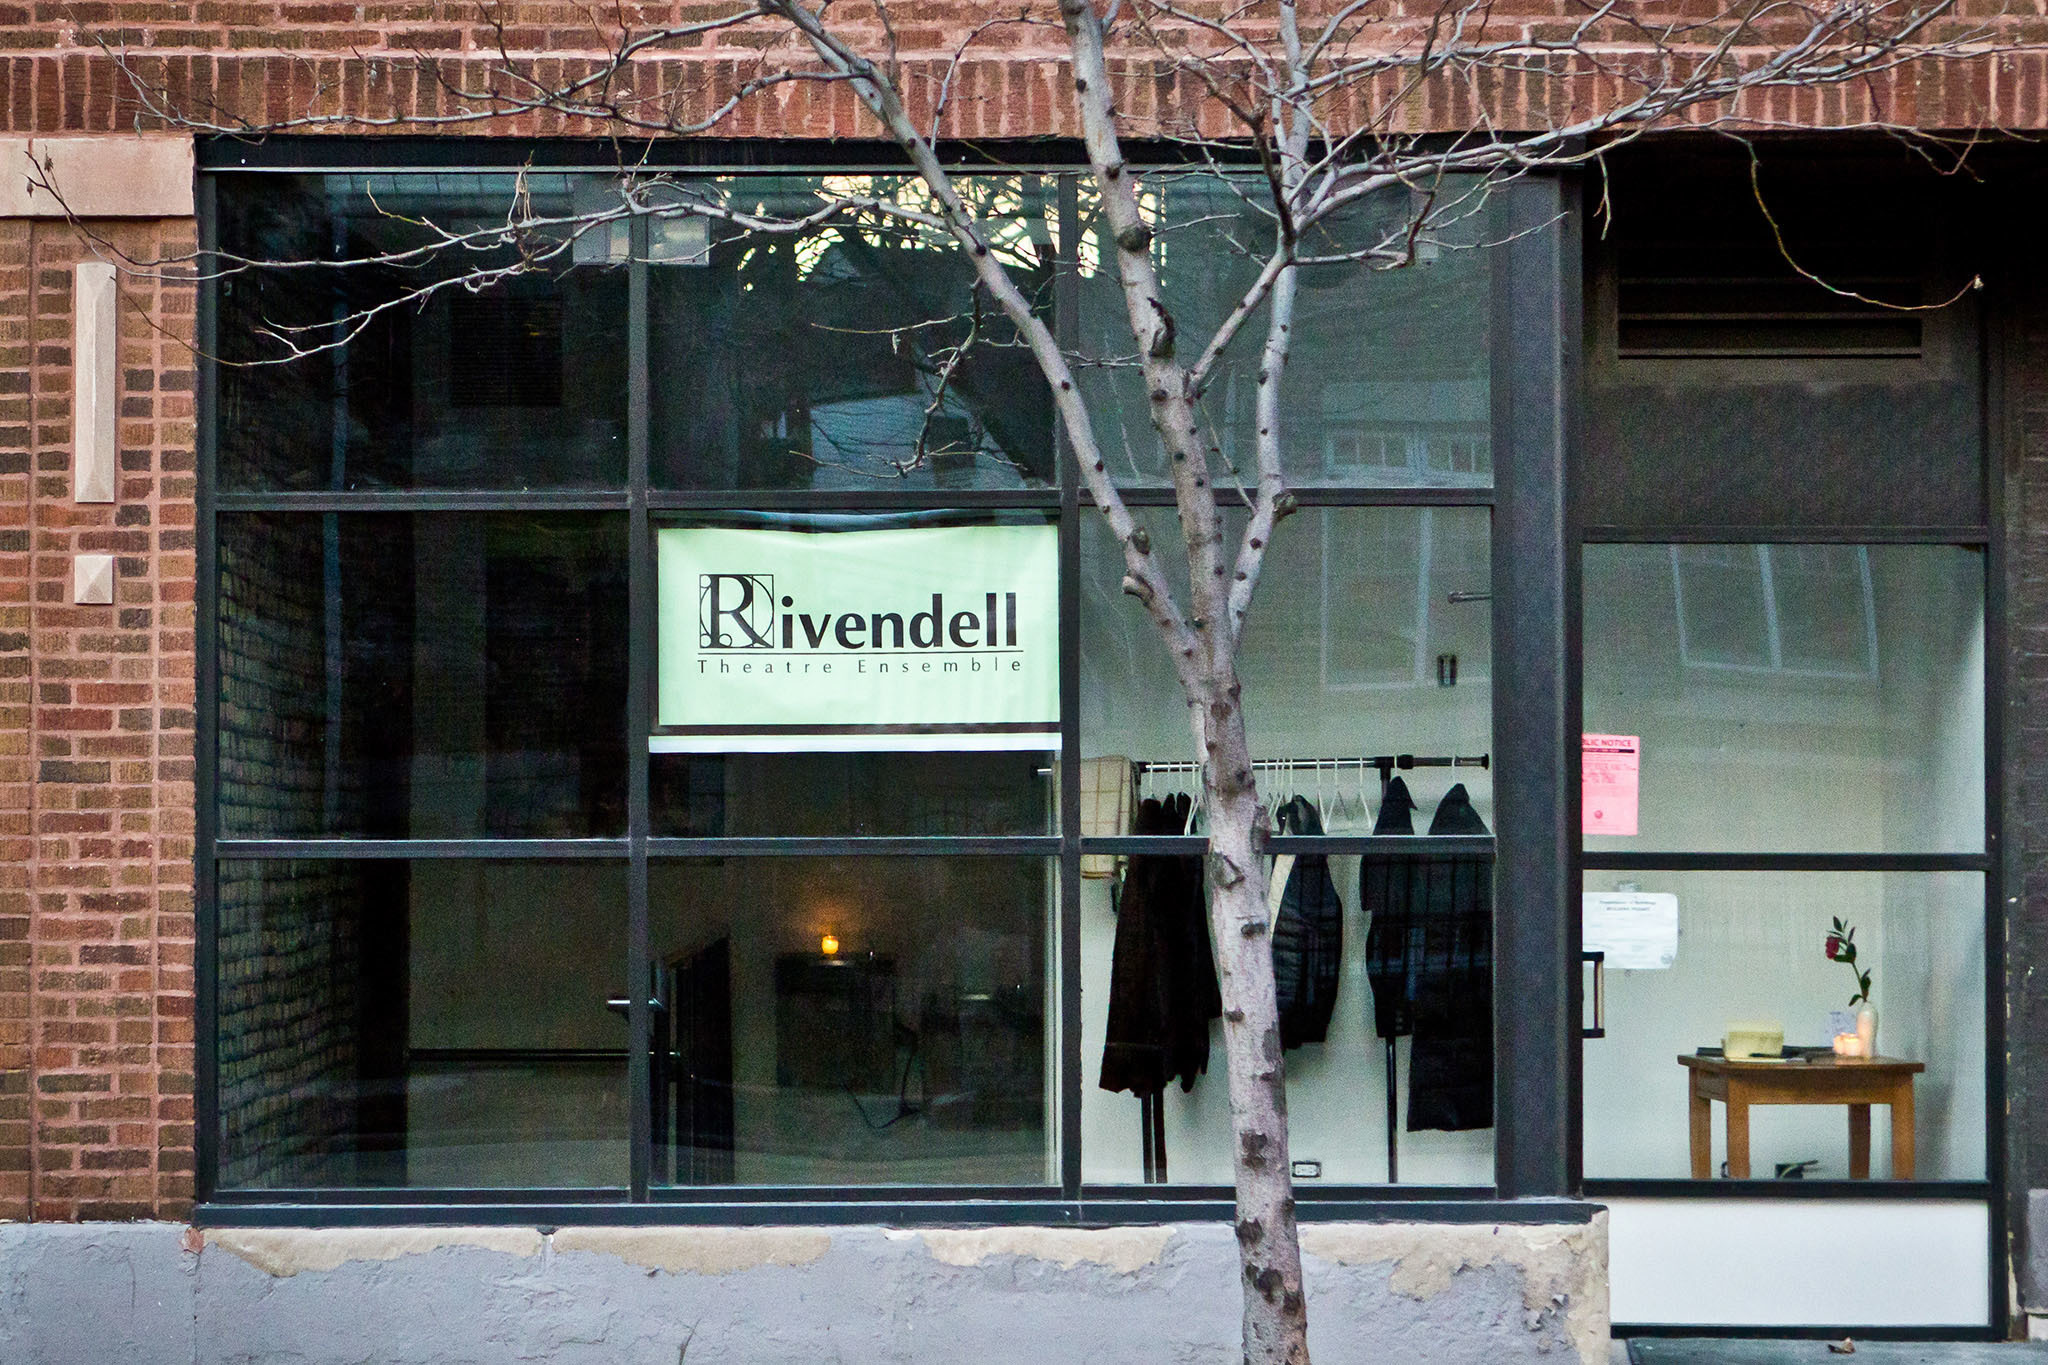 RivendellTheater.VEnue.jpg